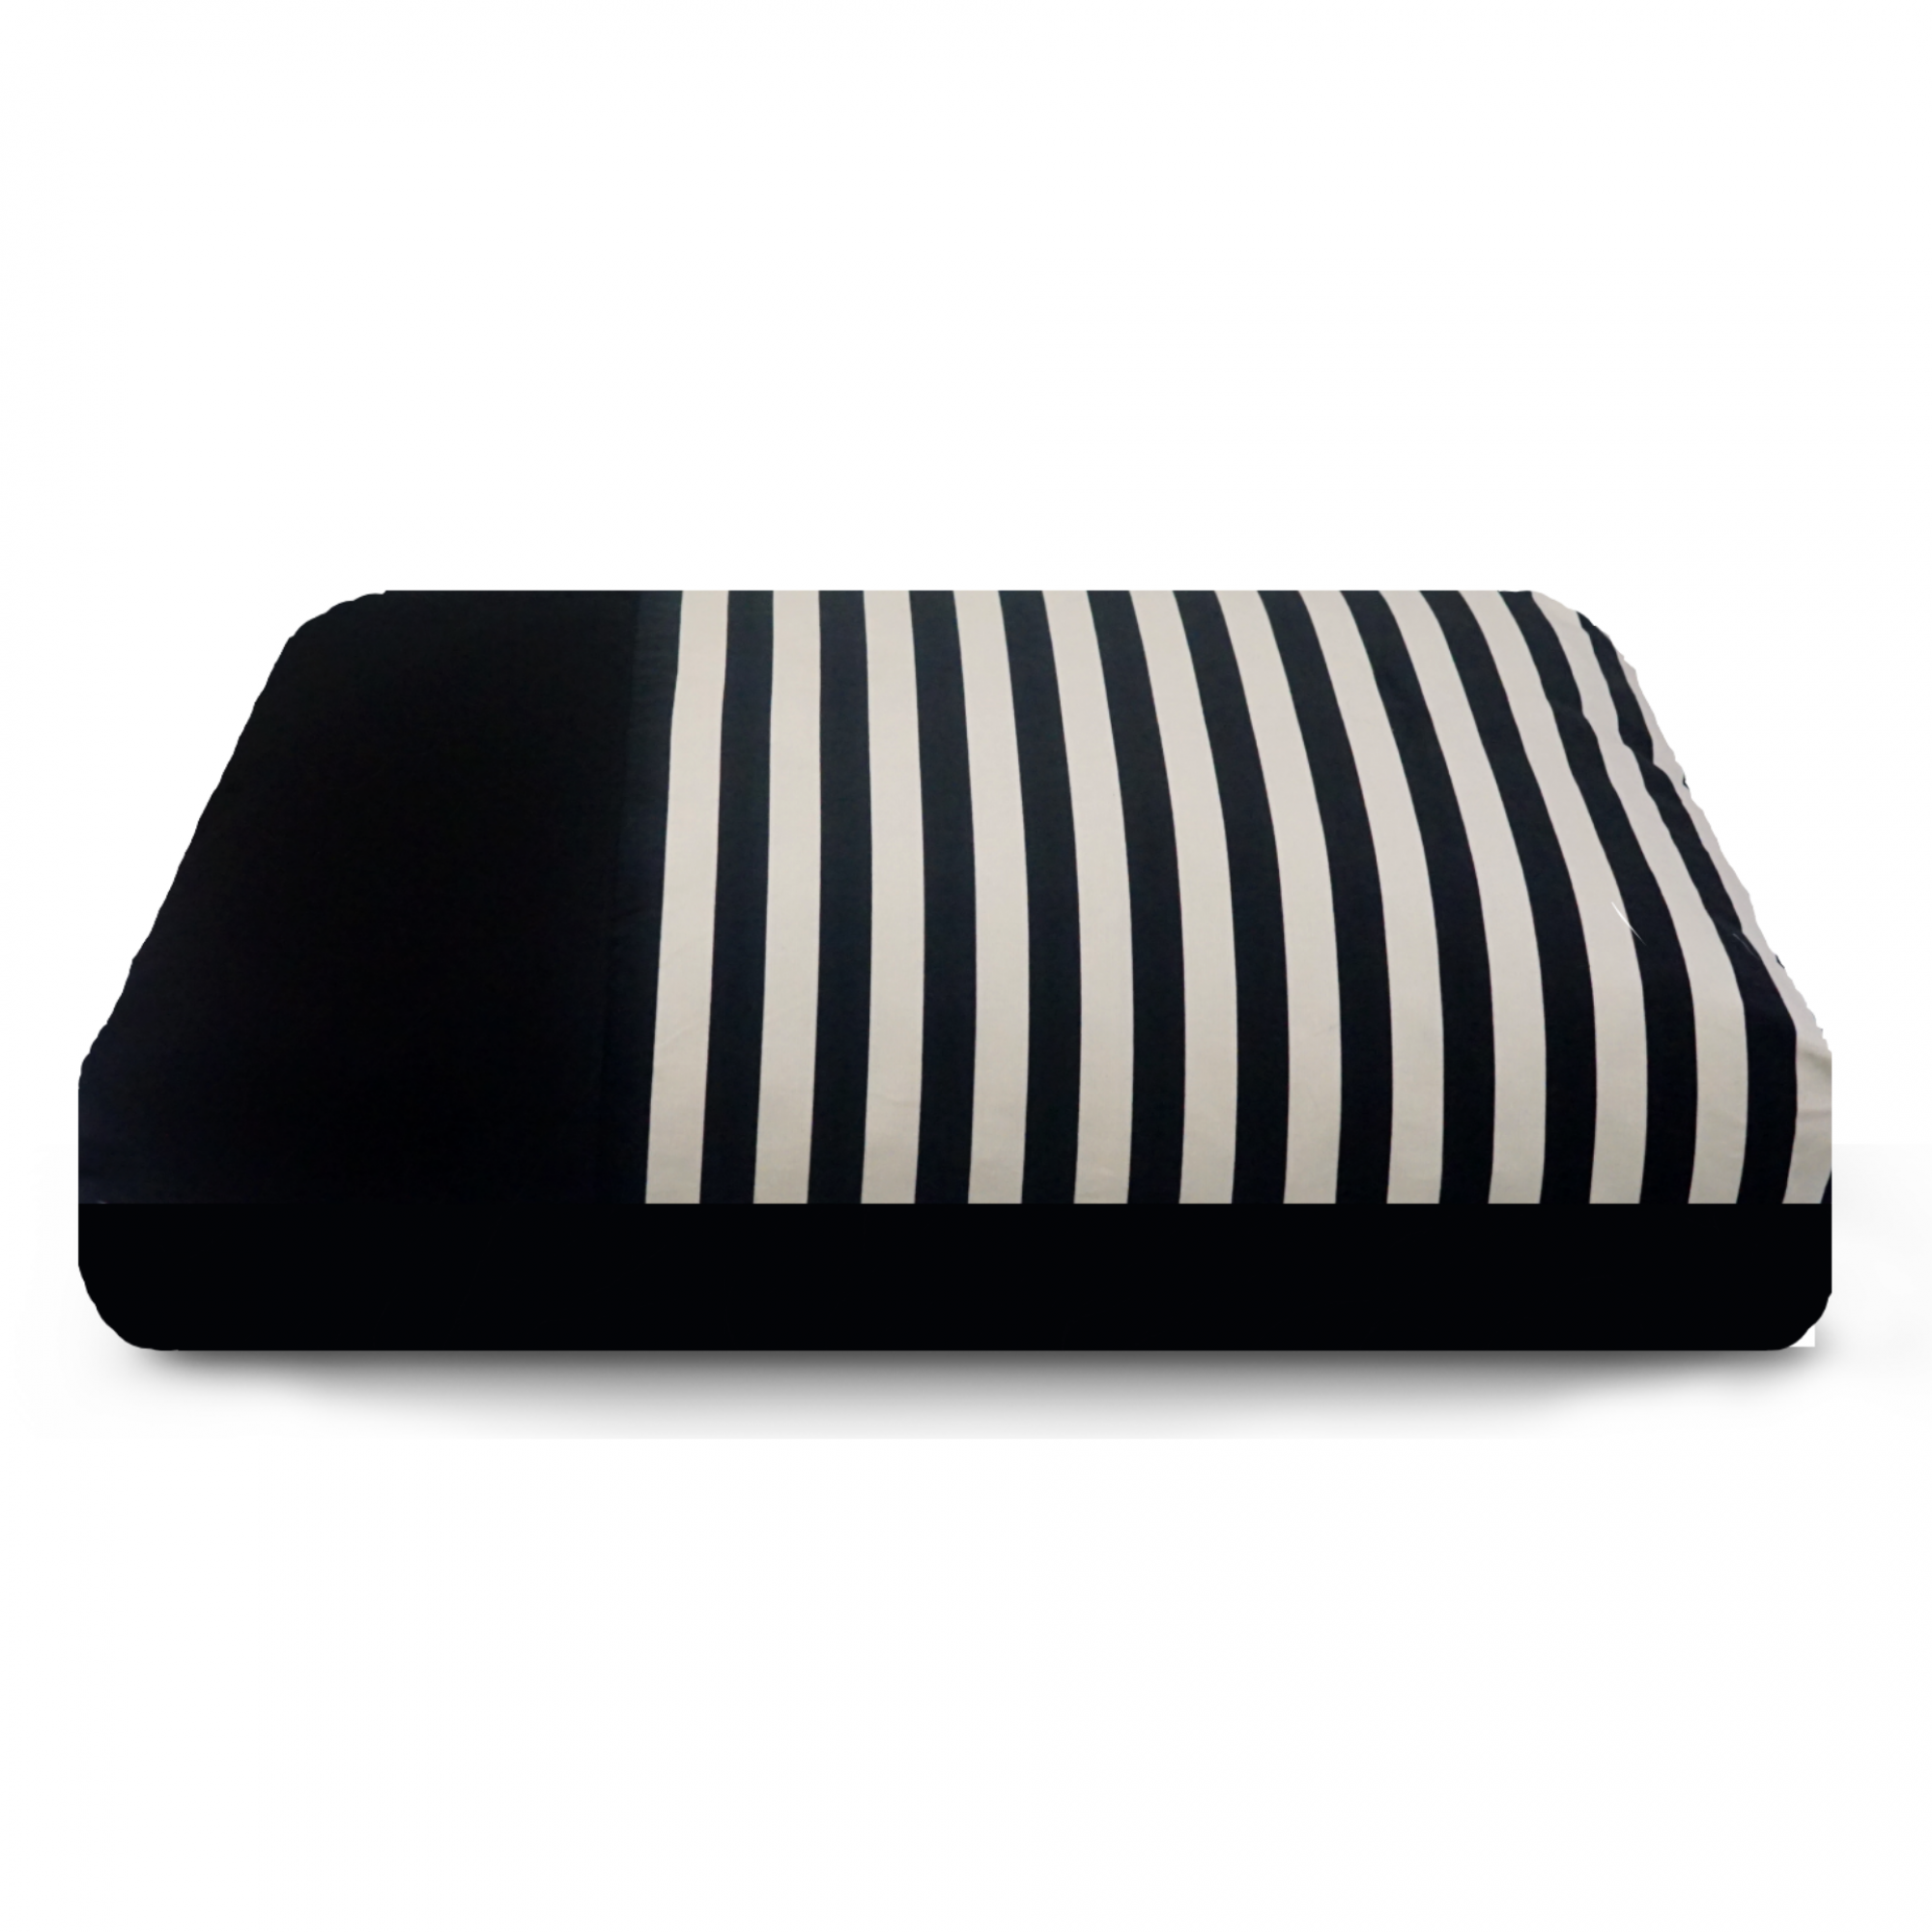 Dreamcastle Dog Bed - Max the Classic